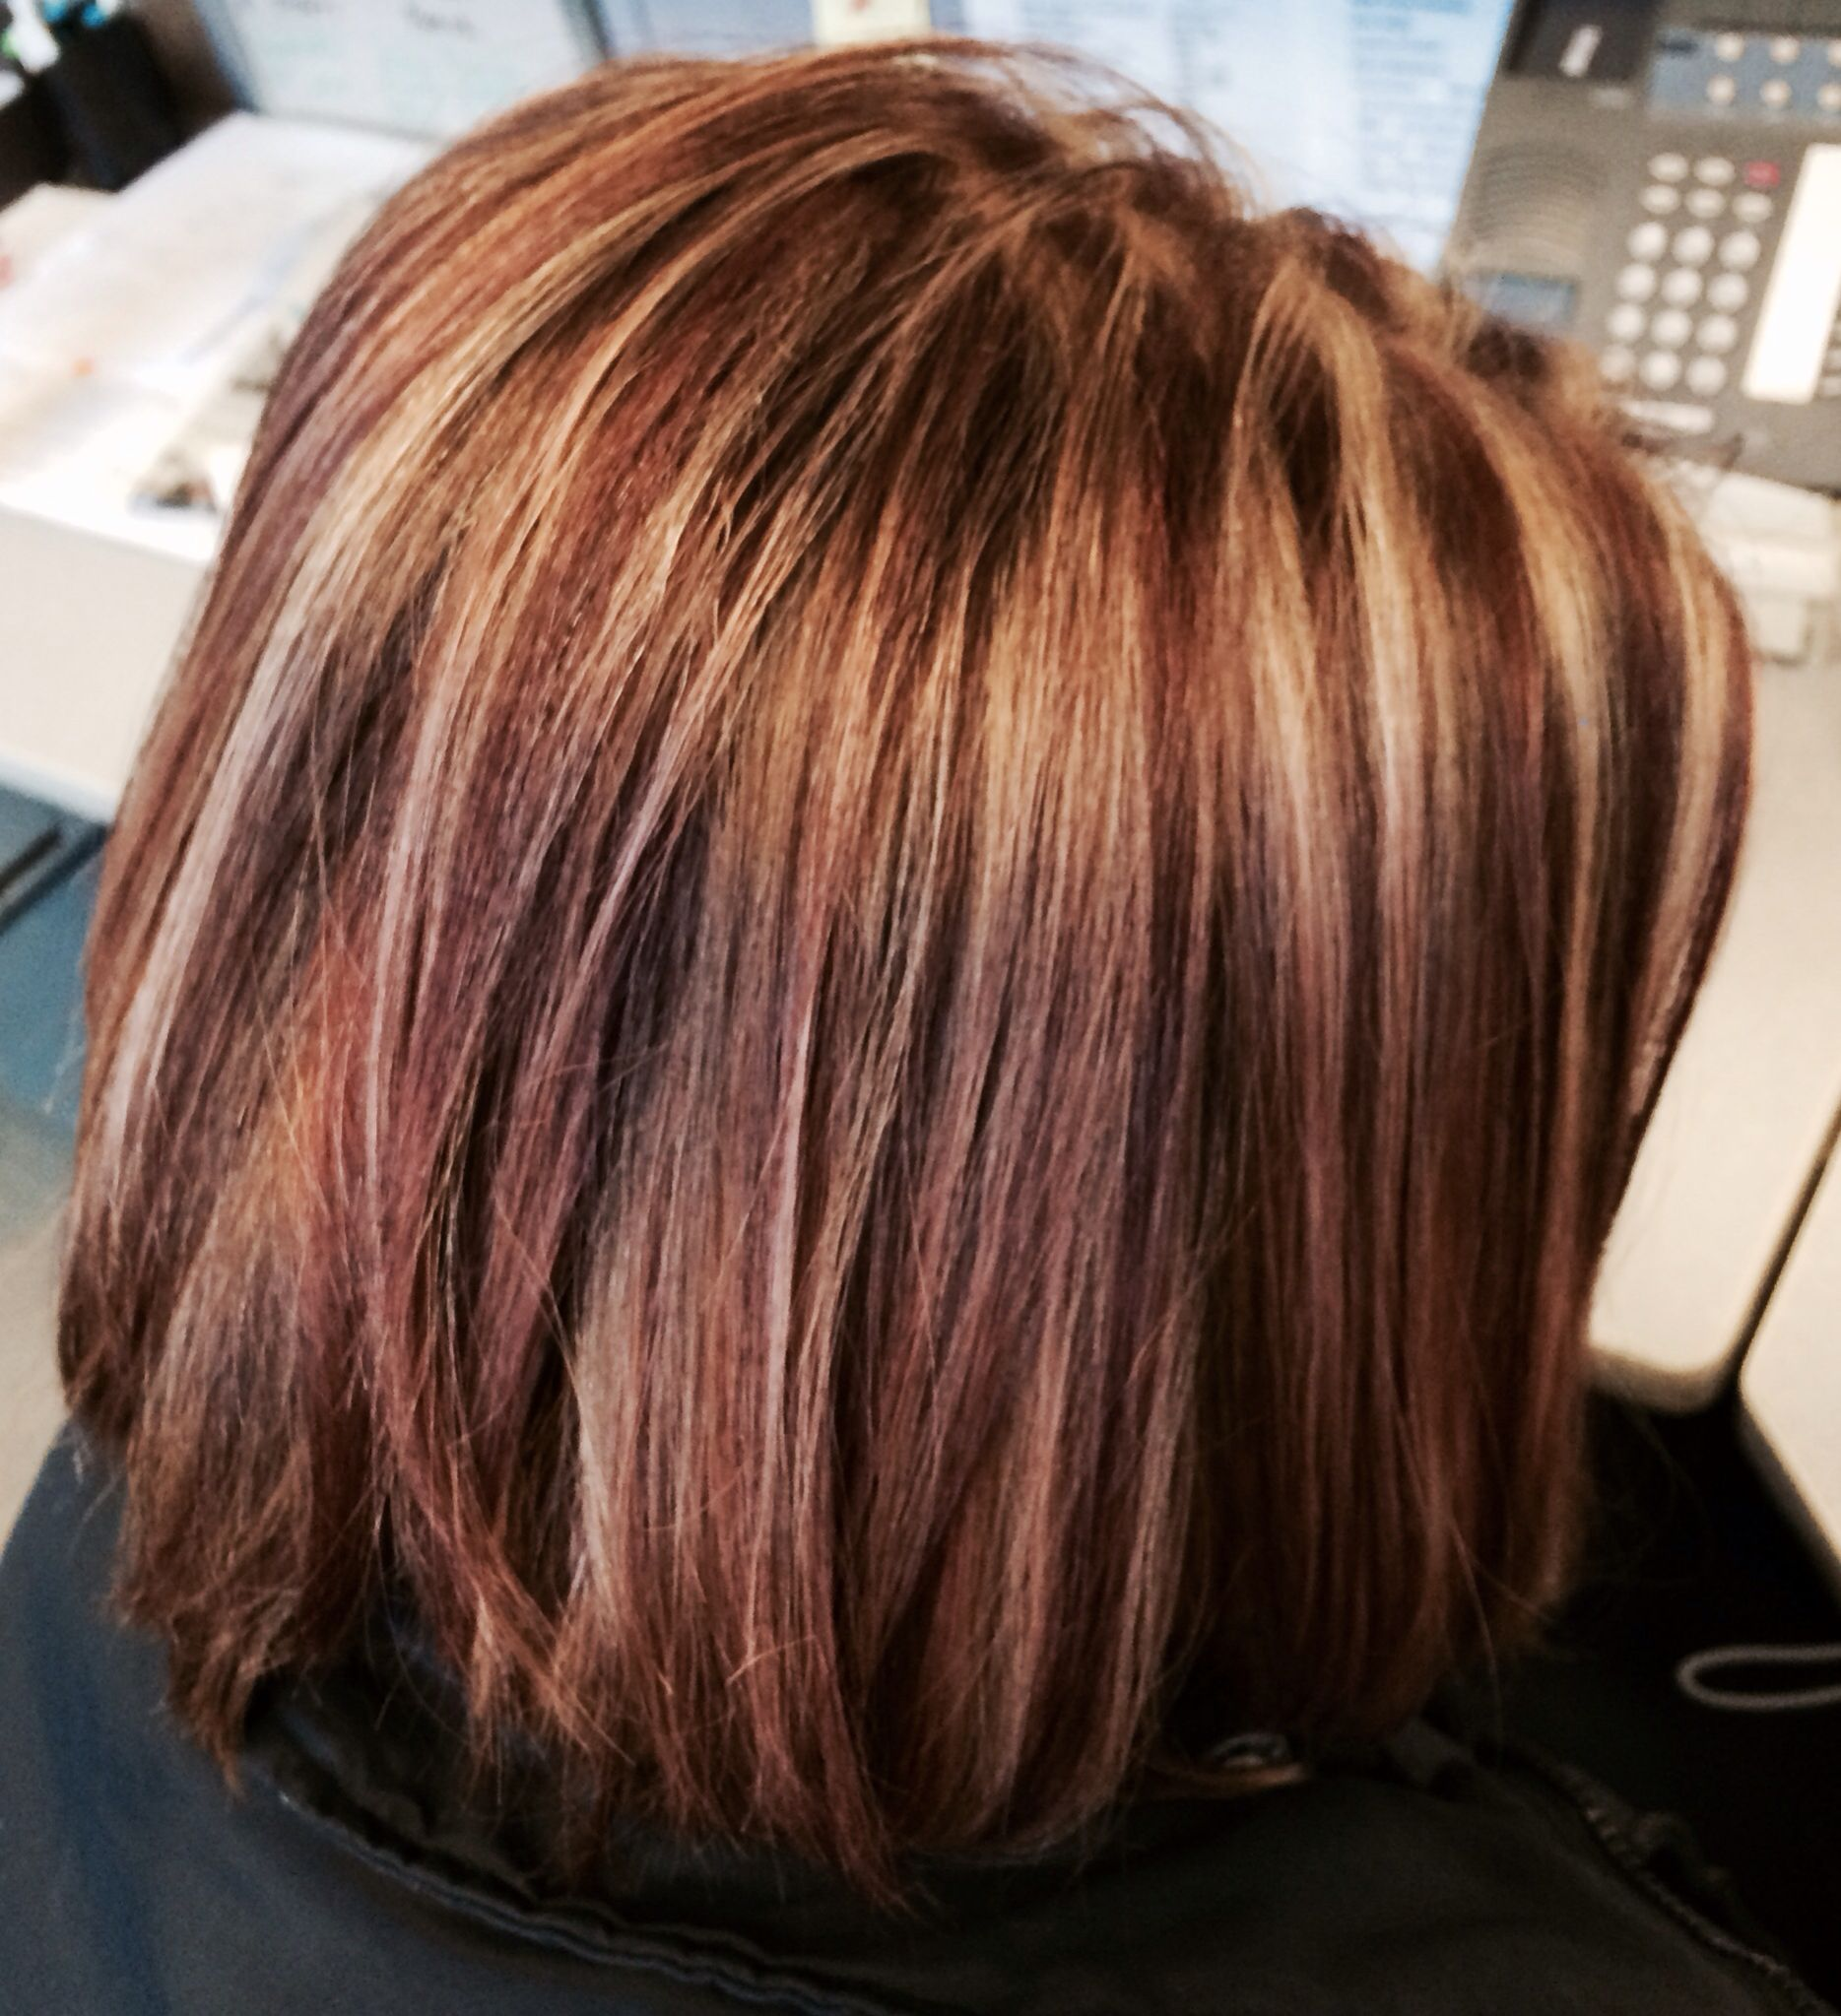 Pin By Dana Howes Butler On Hair Brown Hair Pictures Hair Color Auburn Brown Hair With Highlights